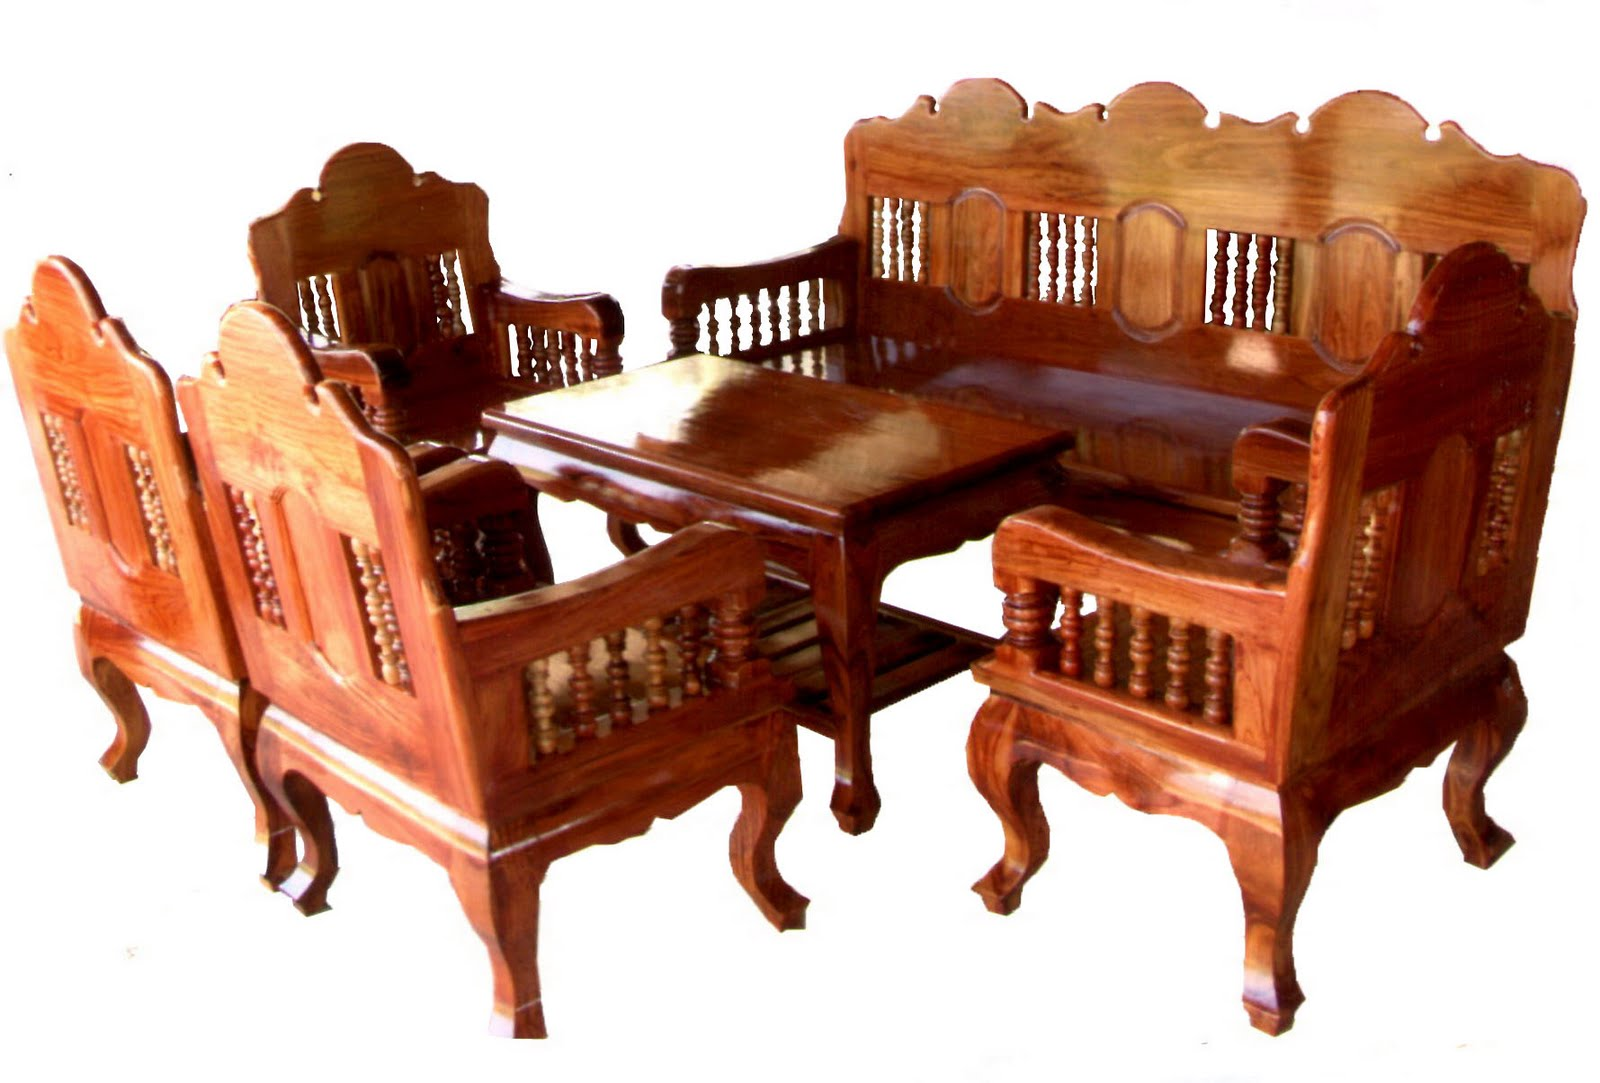 Thailand Carved Furniture Picture Record